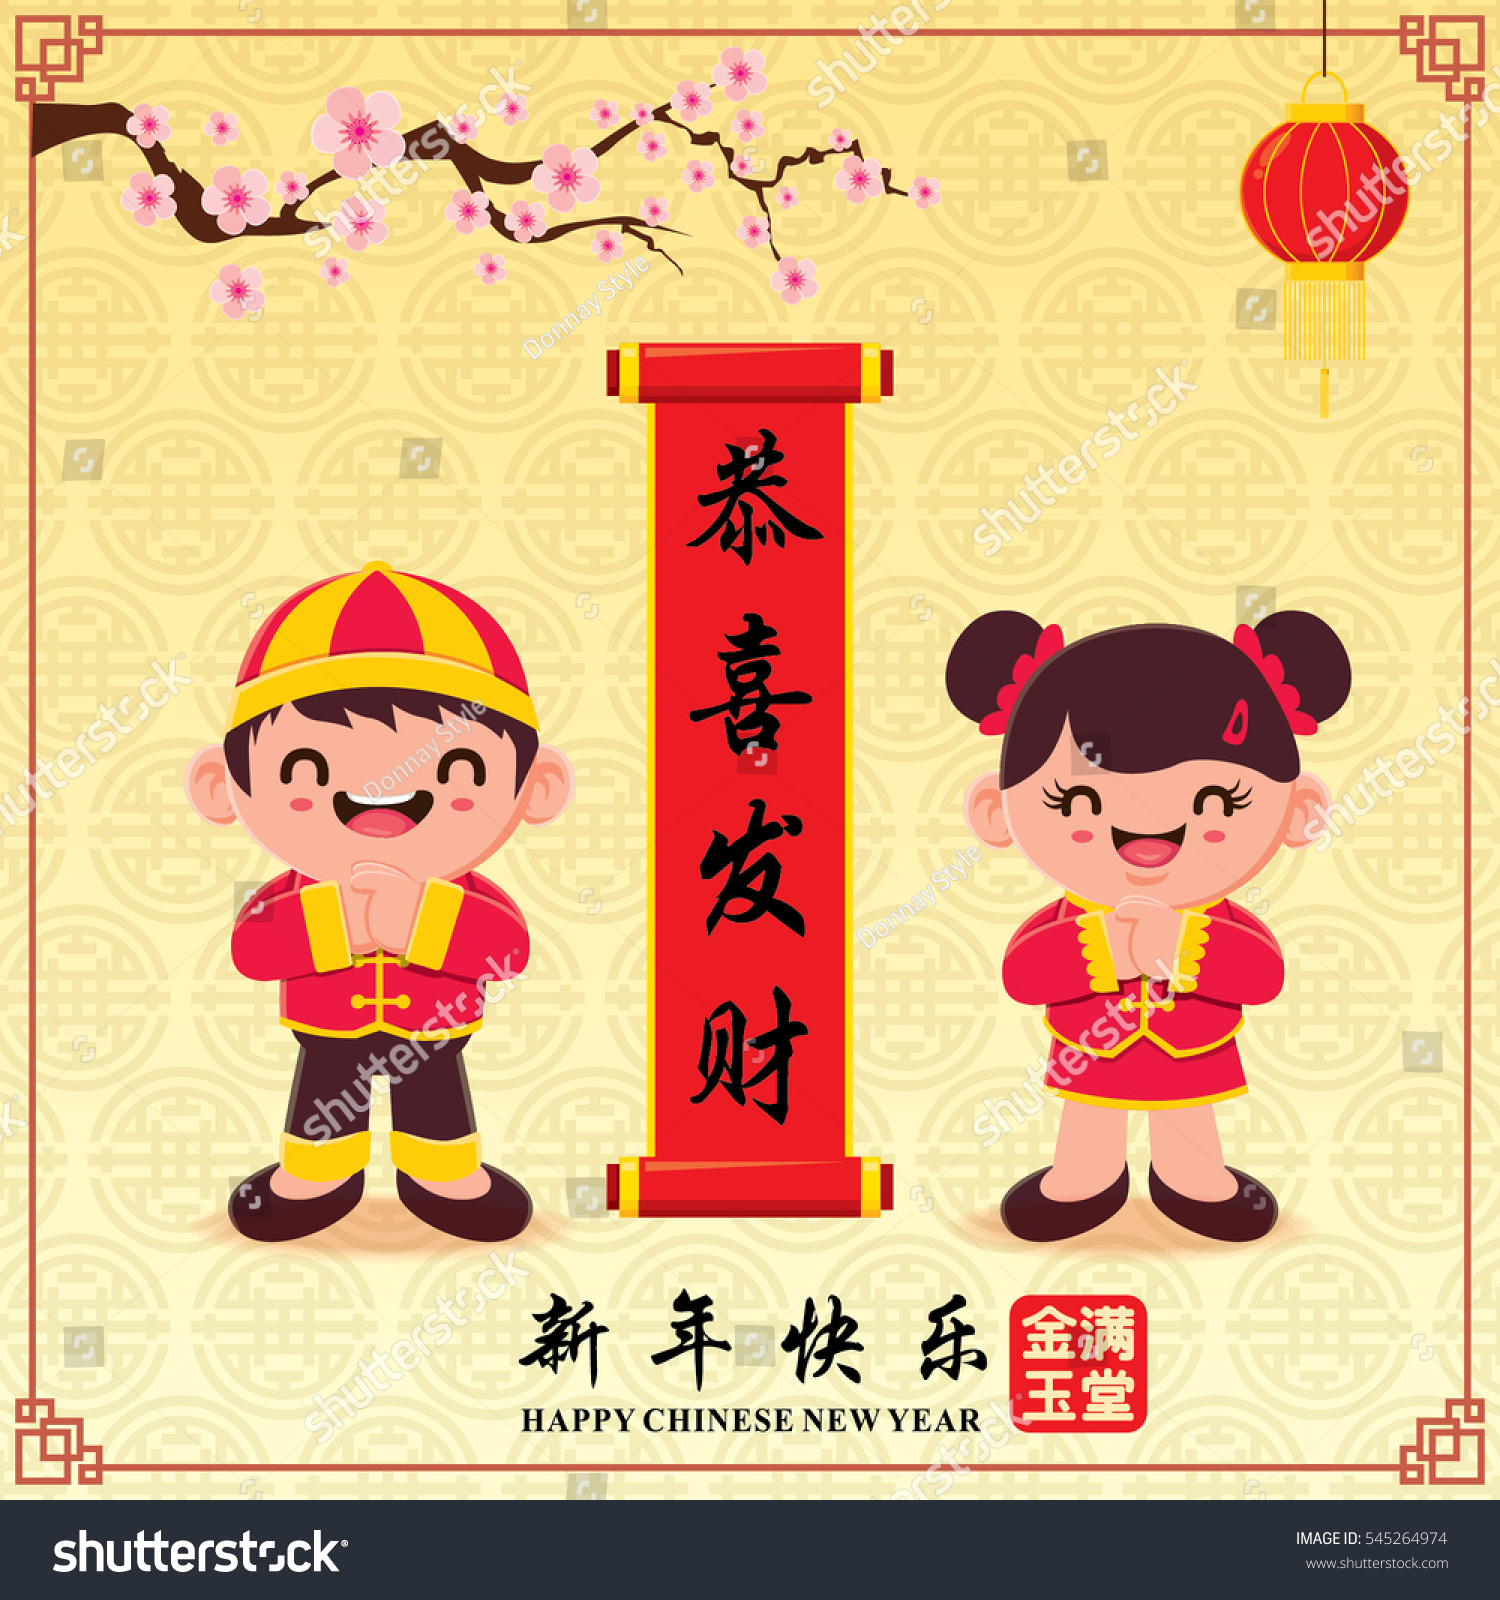 vintage chinese new year poster design stock vector